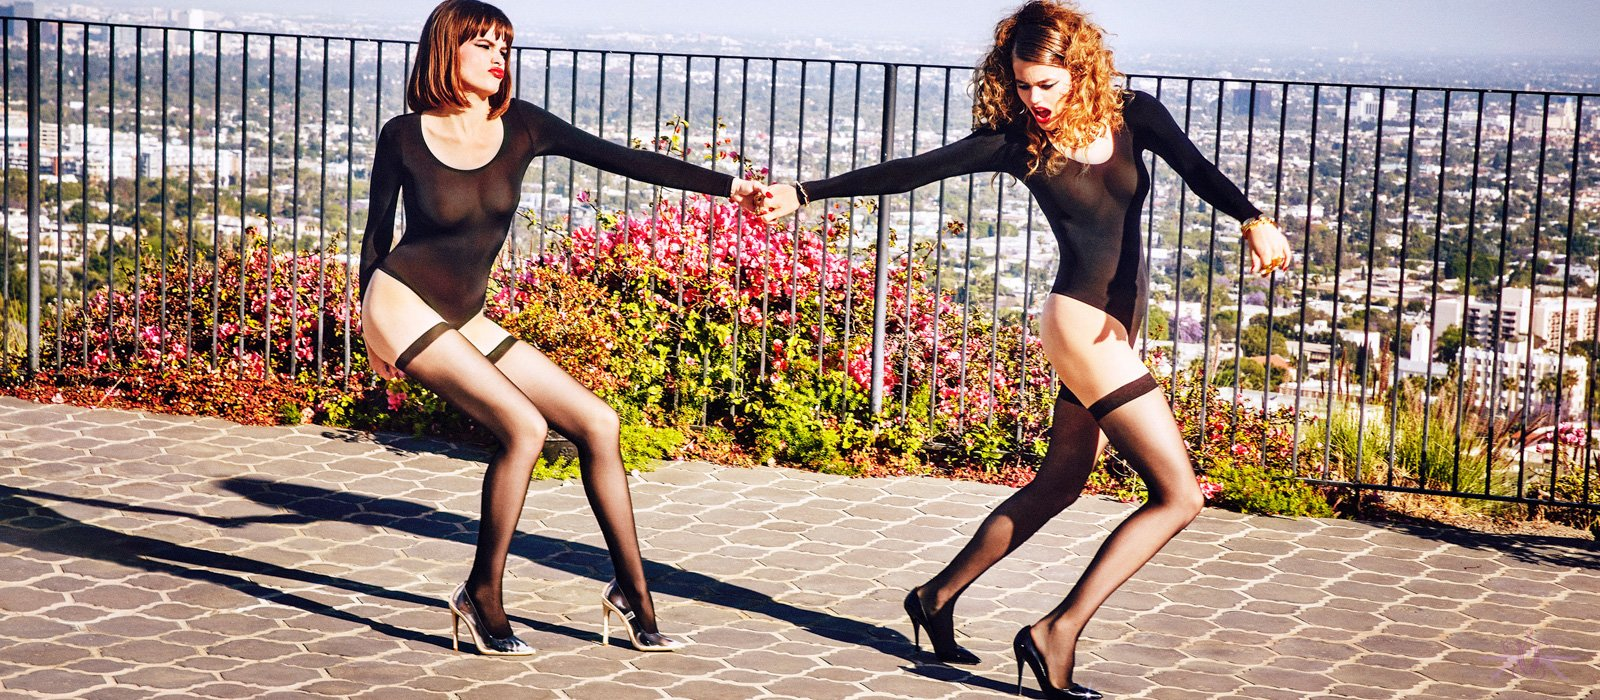 Wolford tights, hold ups, stockings and bodysuits